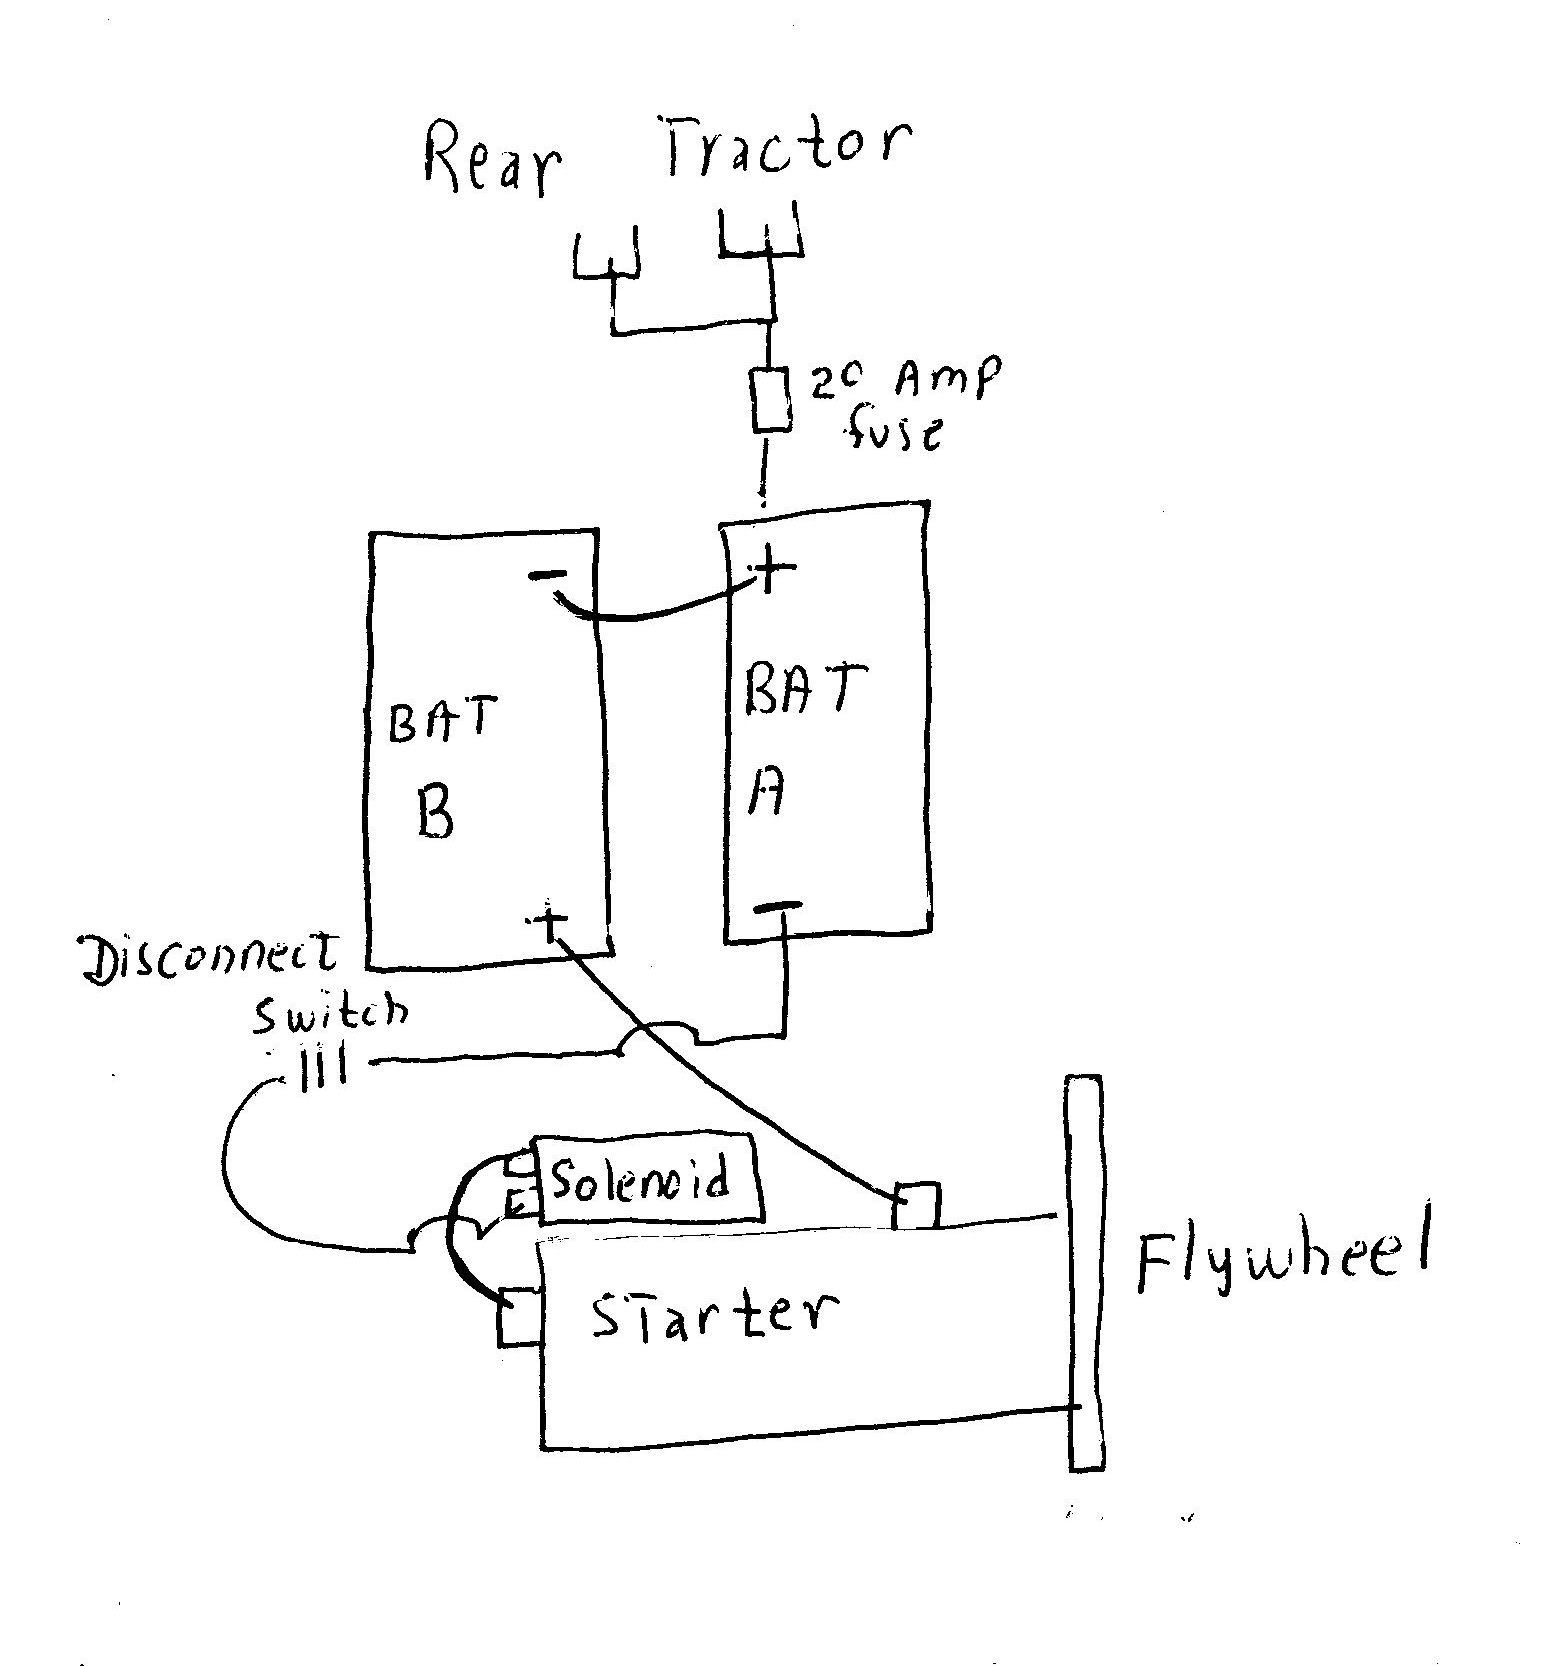 24v boat wiring diagram online wiring diagram